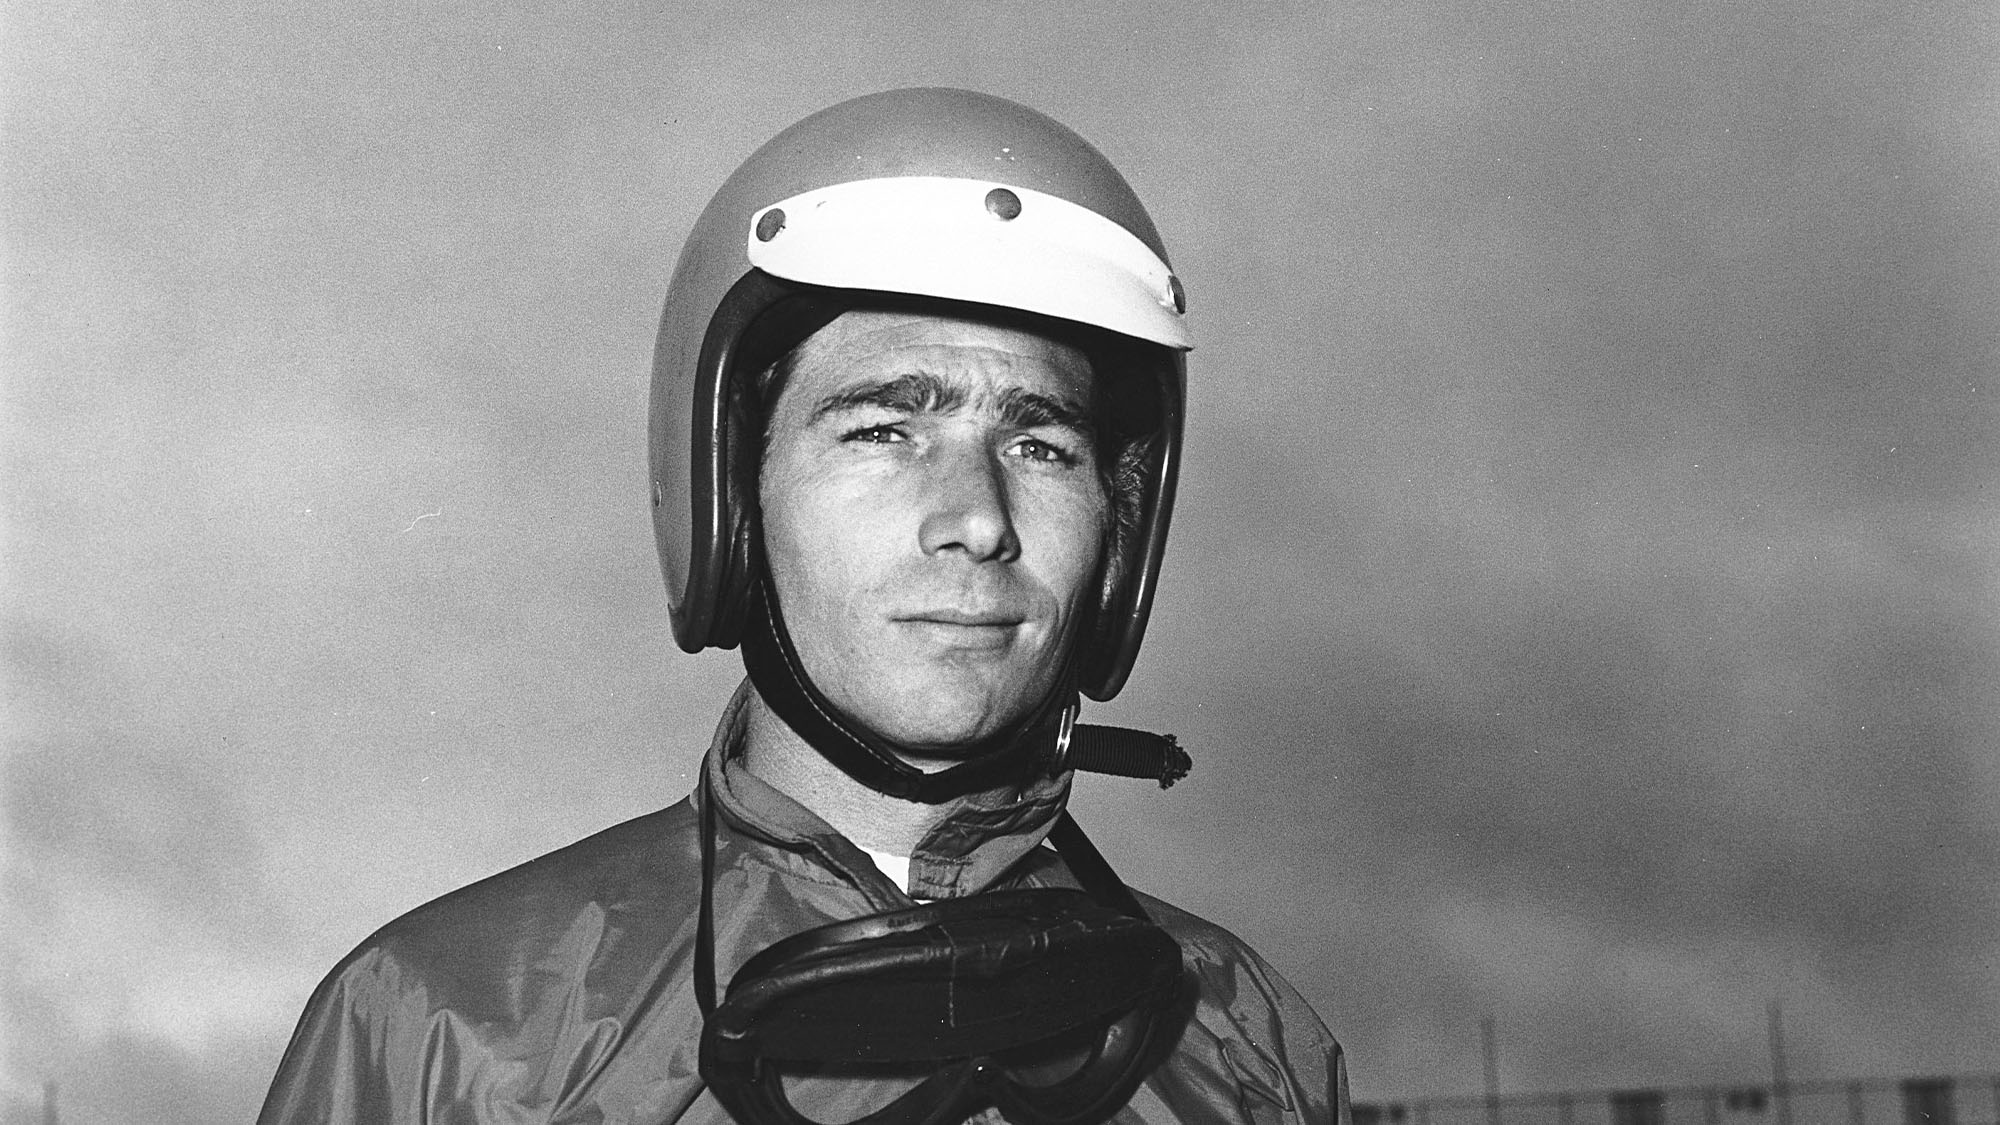 """UNKNOWN — 1960s: Jim Hall of Midland, TX, was not only a top driver and builder of racing cars but was also considered one of racing's greatest """"innovators."""" He co-owned Chaparral Race Cars with good friend and partner, Hap Sharp, and their machines were always considered to be far ahead of their time. Hall was also one of the first builders to experiment with ground effects in racing. After competing for Lotus on the Formula One circuit from 1960 through 1963, Hall and his Chaparral cars went on to score 10 SCCA United States Road Racing Championship victories between 1964 and 1965. One of his biggest wins was in the 12 Hours of Sebring at the Sebring (FL) International Raceway in 1965, defeating the highly touted Ford GT-40s. Turning his attention to Indy Car racing after retiring as a driver, Hall won the Indianapolis 500 at the Indianapolis (IN) Motor Speedway in 1978 with driver Al Unser, and again in 1980 with Johnny Rutherford behind the wheel. (Photo by ISC Images & Archives via Getty Images)"""